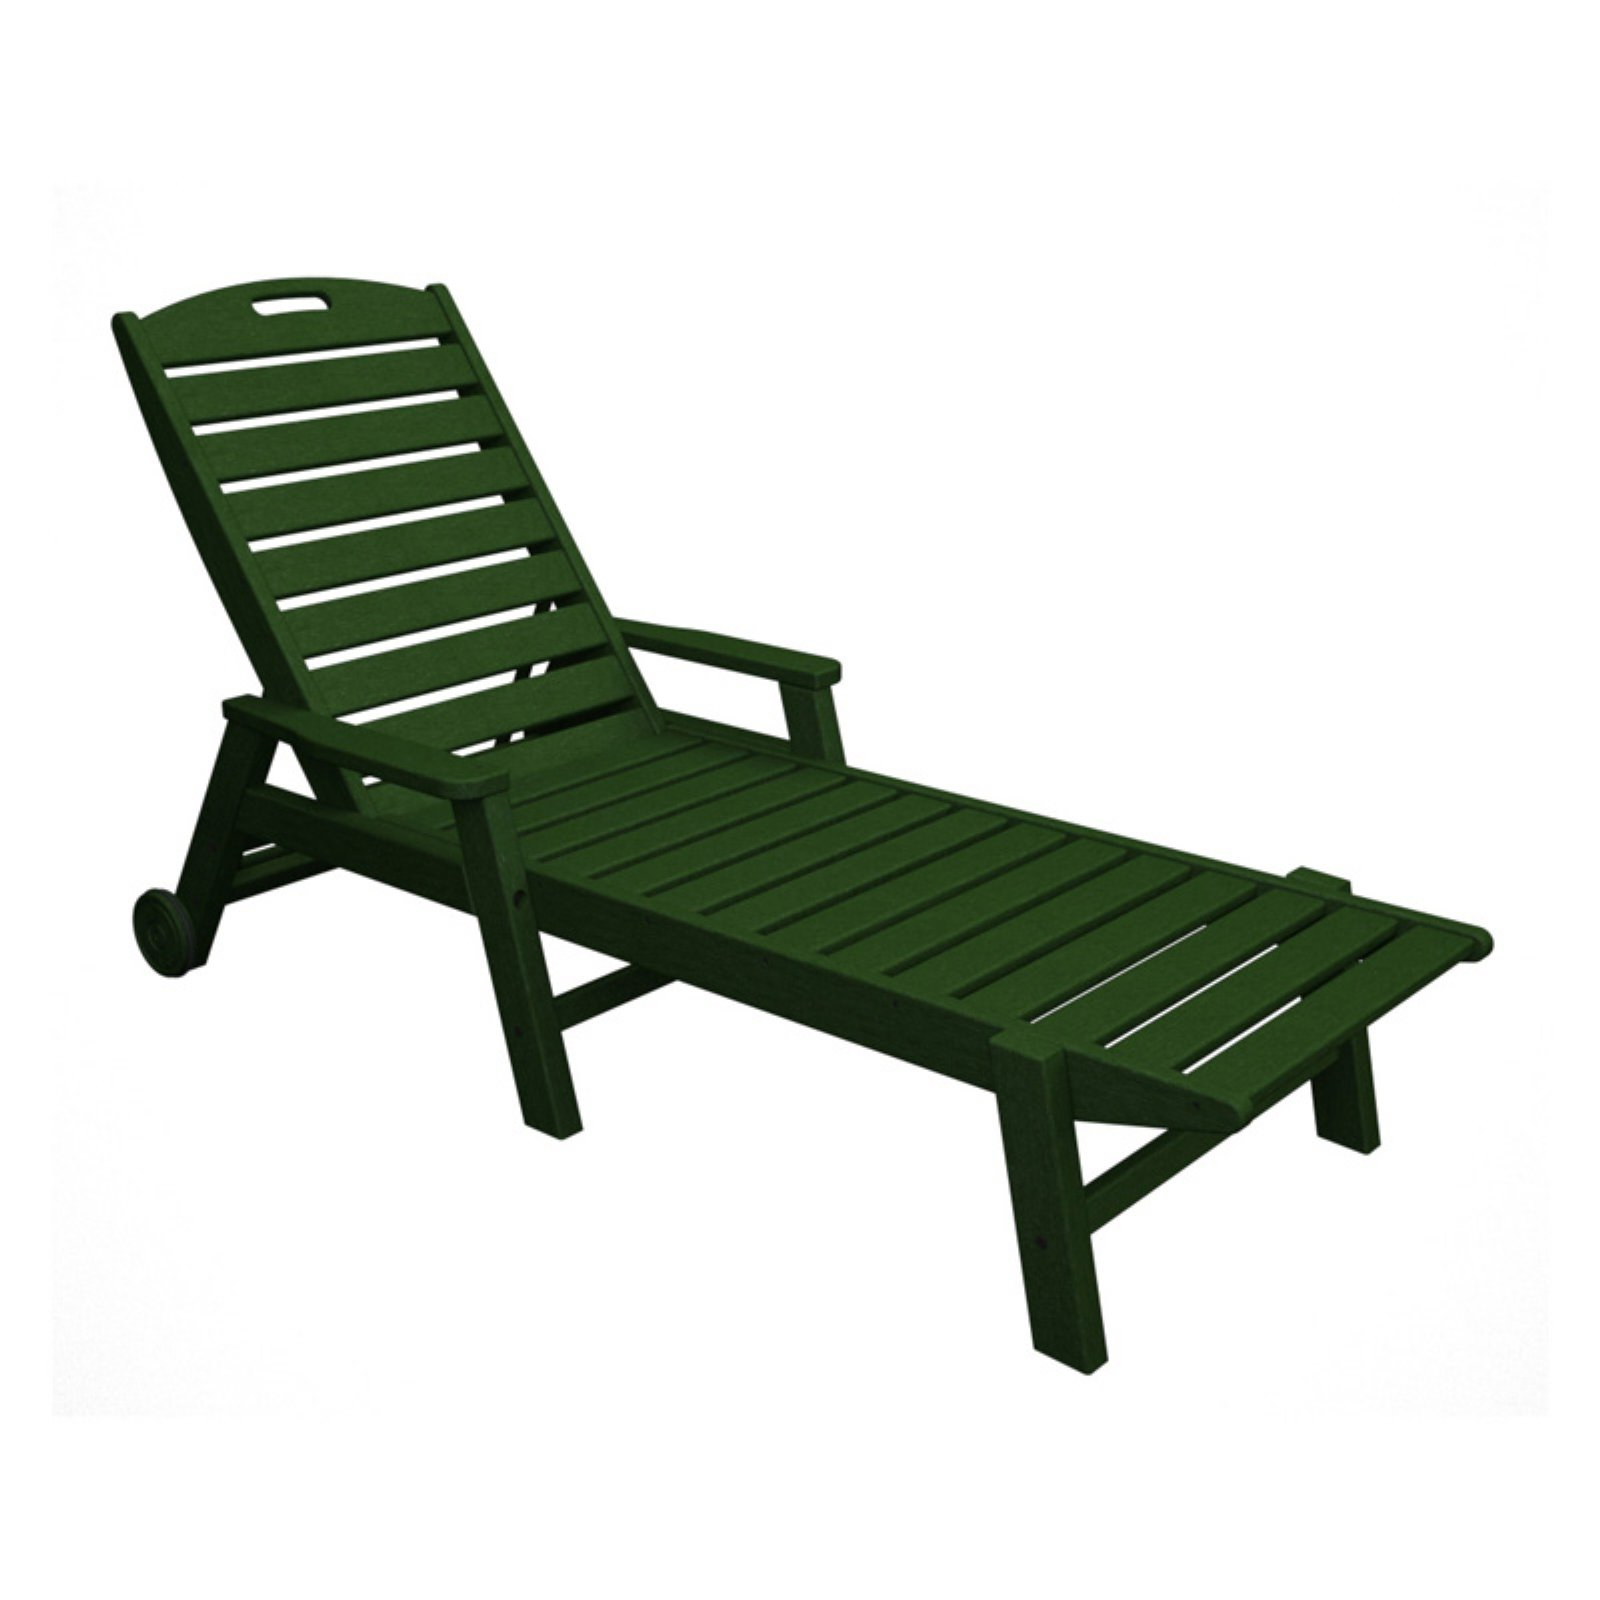 Stackable Nautical Outdoor Chaise Lounges Intended For Best And Newest Outdoor Polywoodâ® Nautical Stackable Wheeled Chaise With (View 5 of 25)